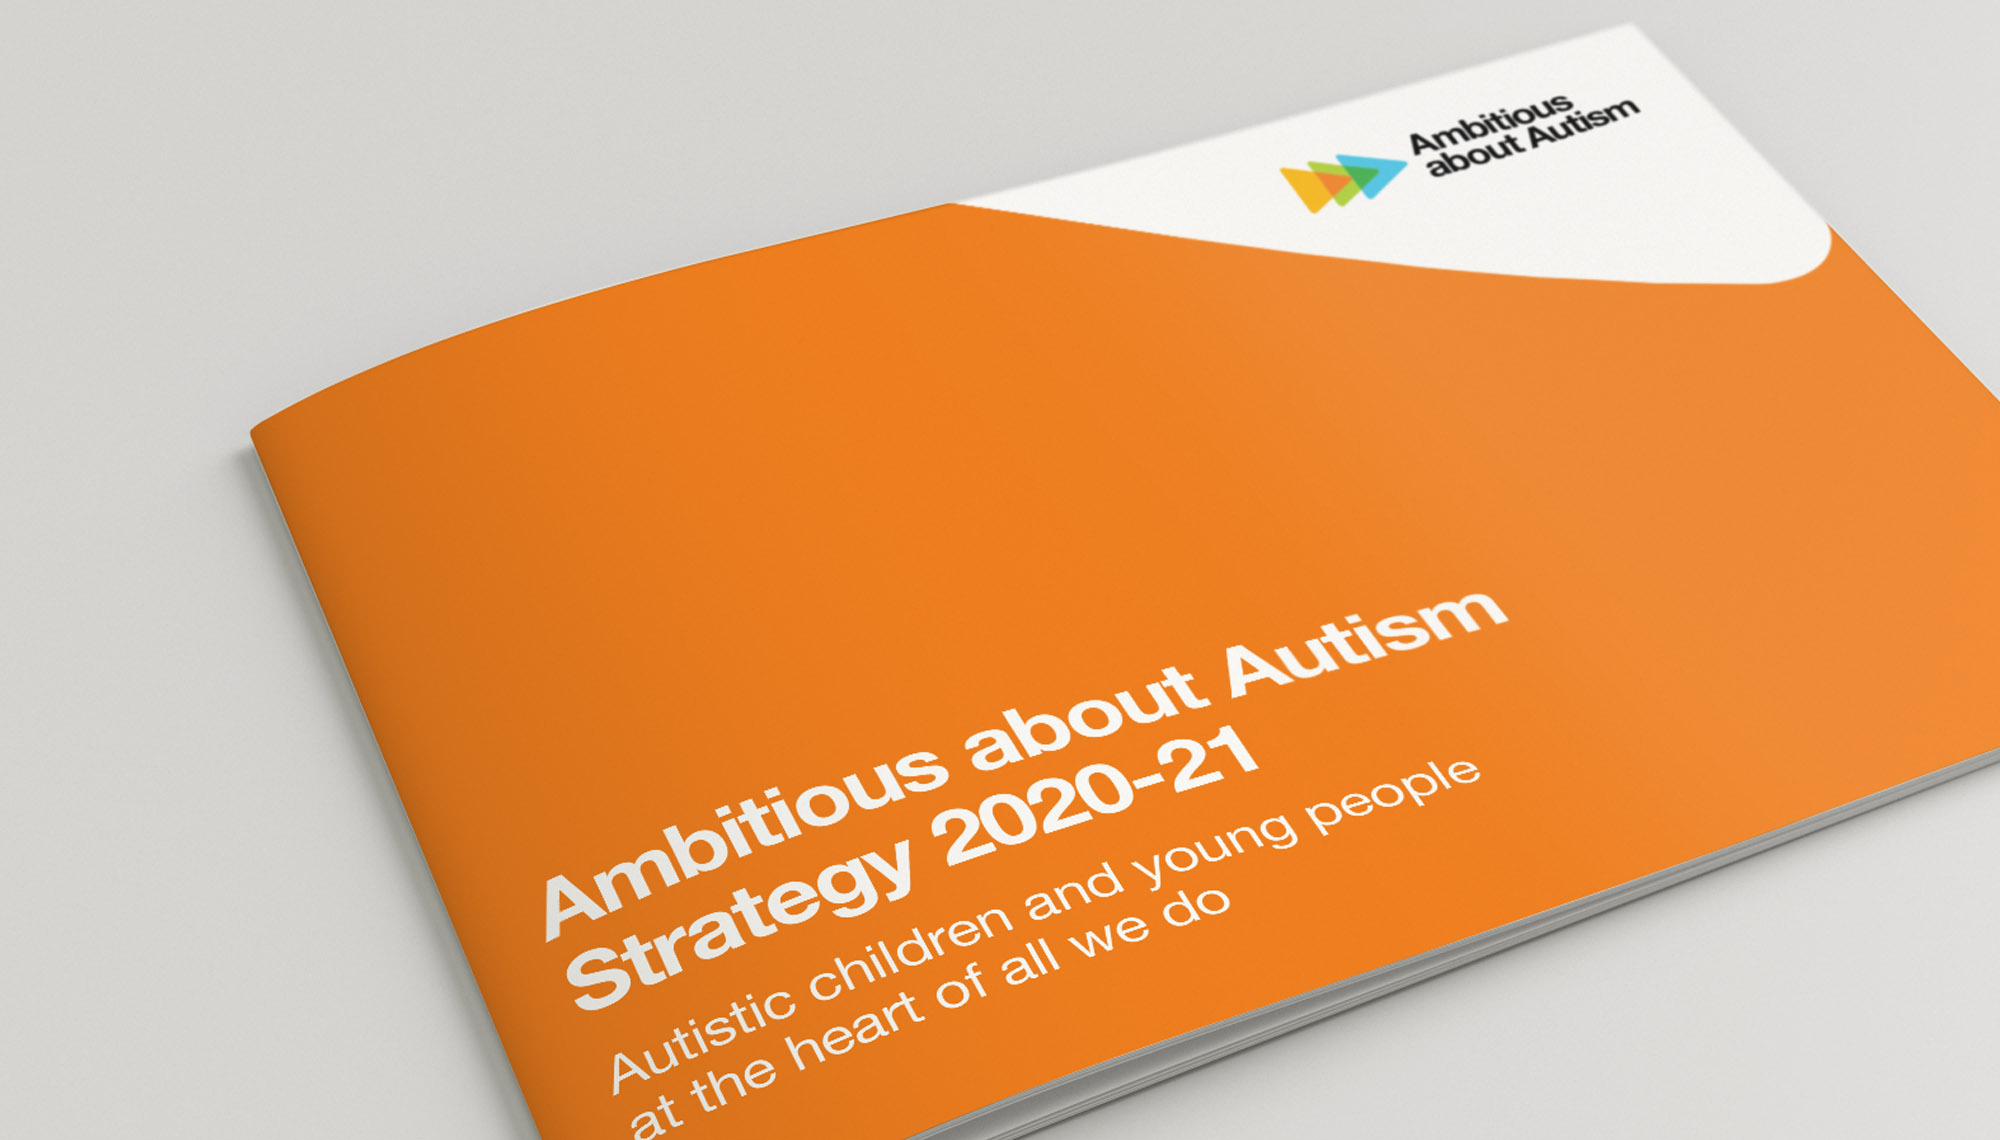 Ambitions about autism strategy report